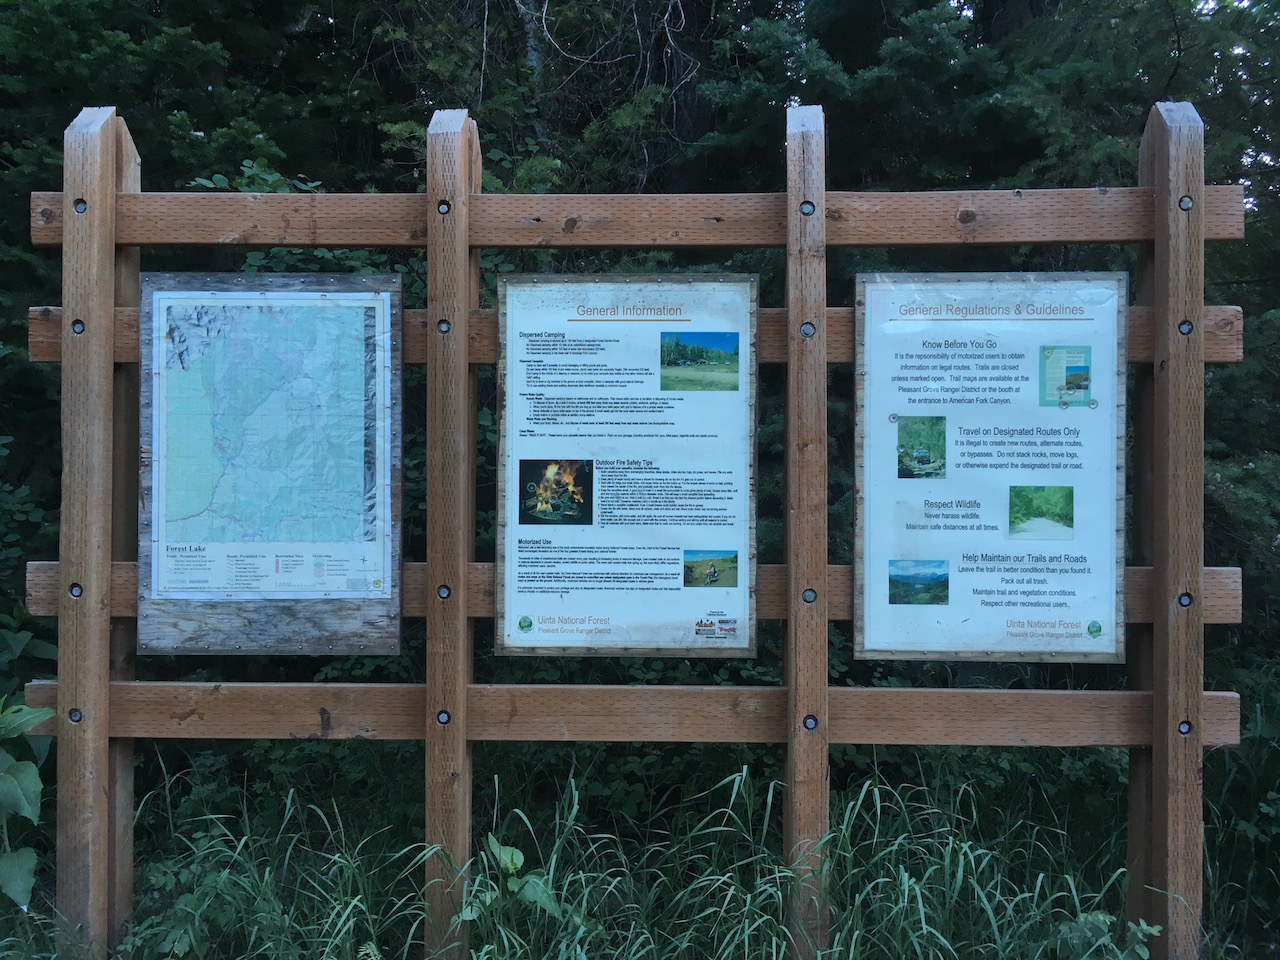 Forest Lake - Waypoint 2: Informational Board